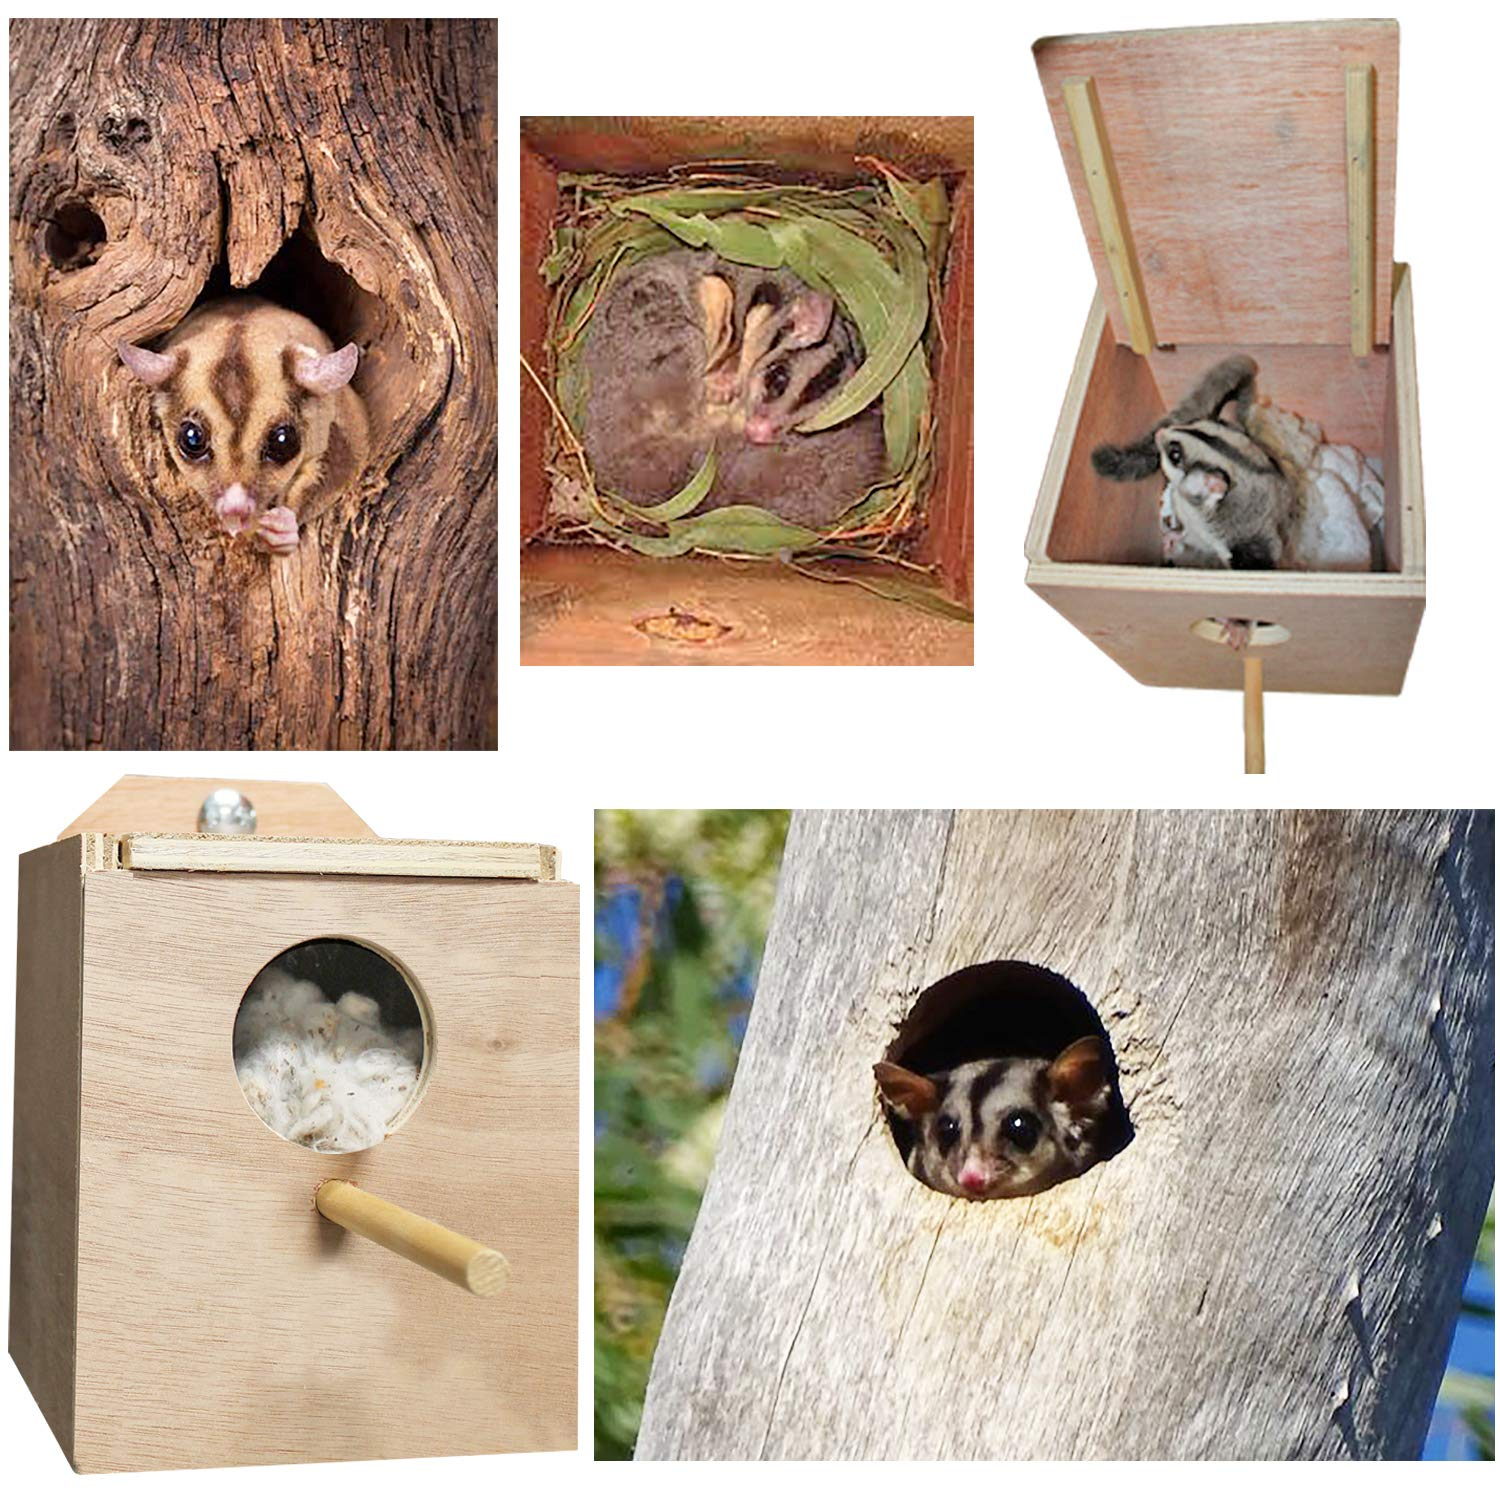 Wood Nest Box with Cage Attachment, Hinged Lid, Perching Ledge - for Sugar Glider, Squirrel, Rat, Degu, Finch, Parakeet, Lovebird, Parrotlet, Lovebird, Canary, Cockatiel, Other Birds & Small Pets by Exotic Nutrition